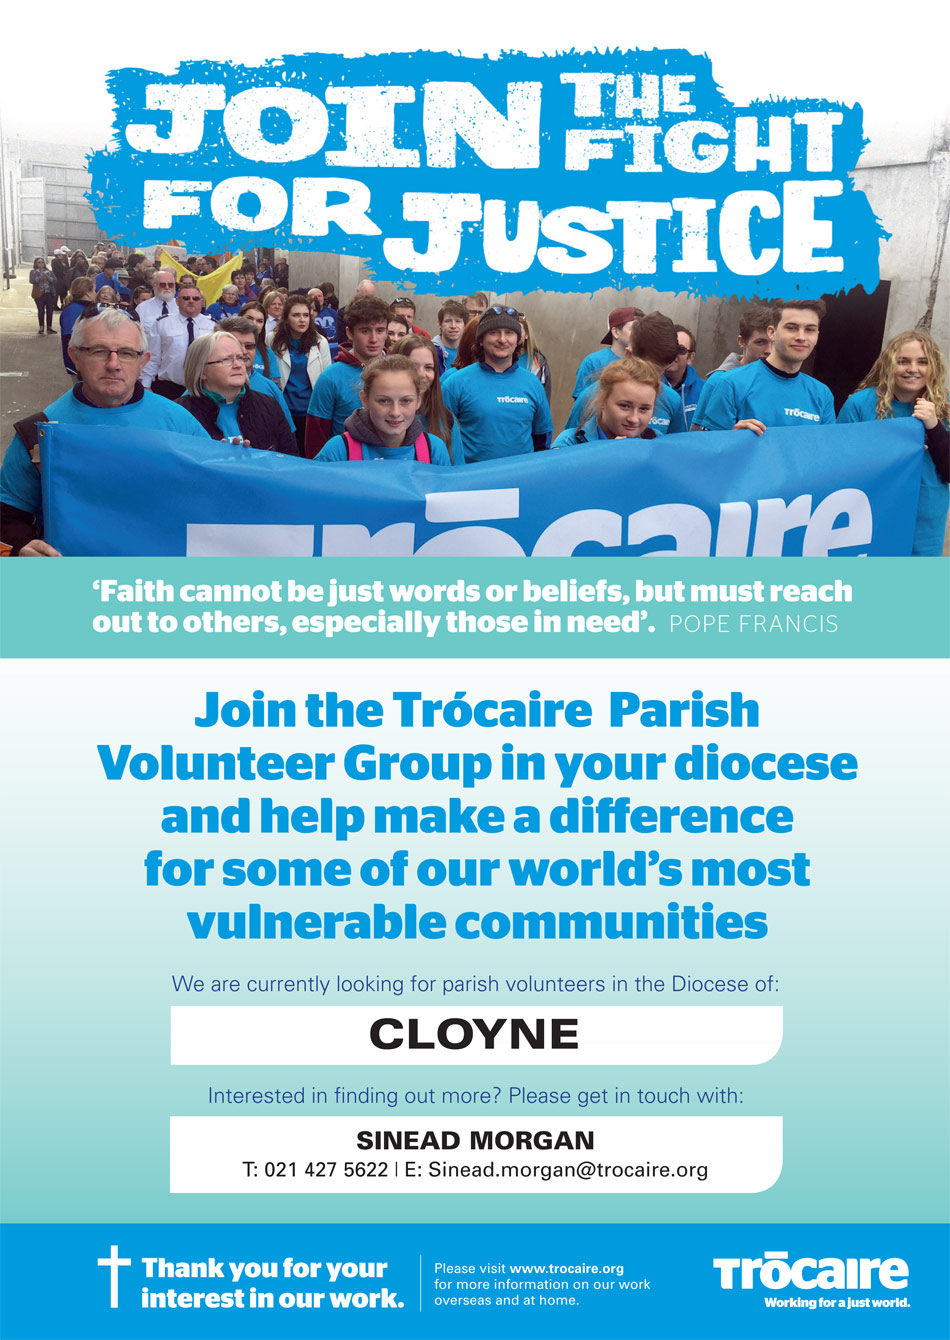 Parish-Volunteer-Poster_Cloyne